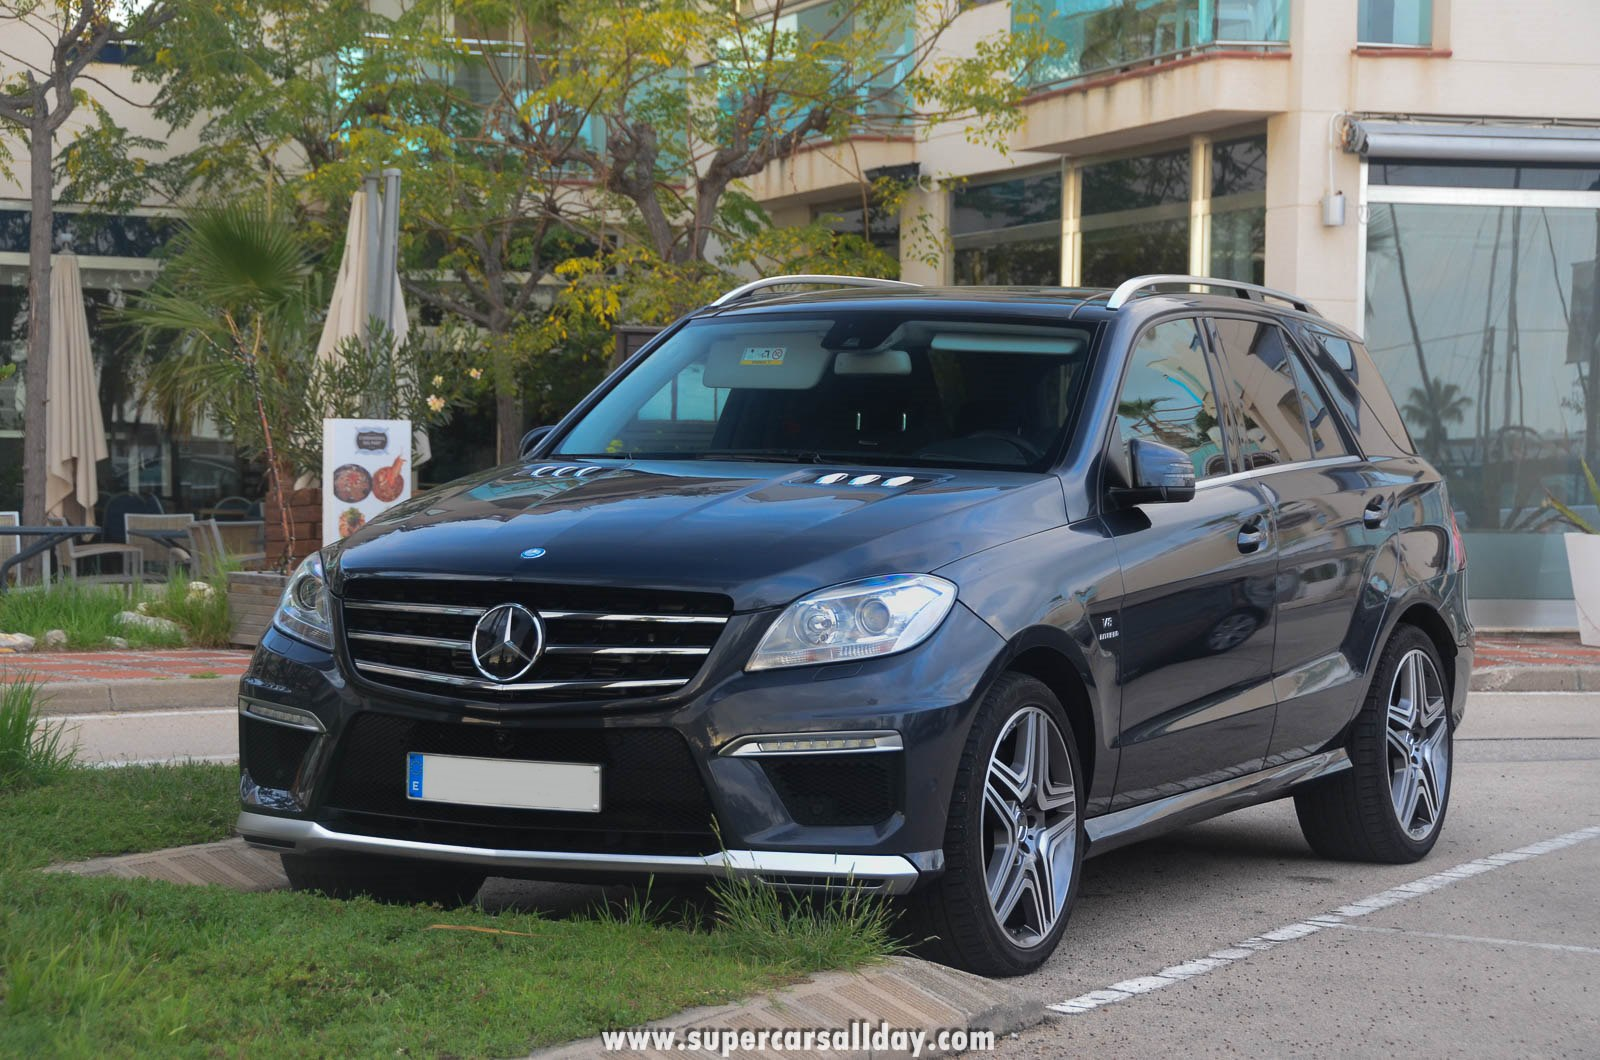 Mercedes benz ml 63 amg w166 supercars all day exotic for Mercedes benz ml 63